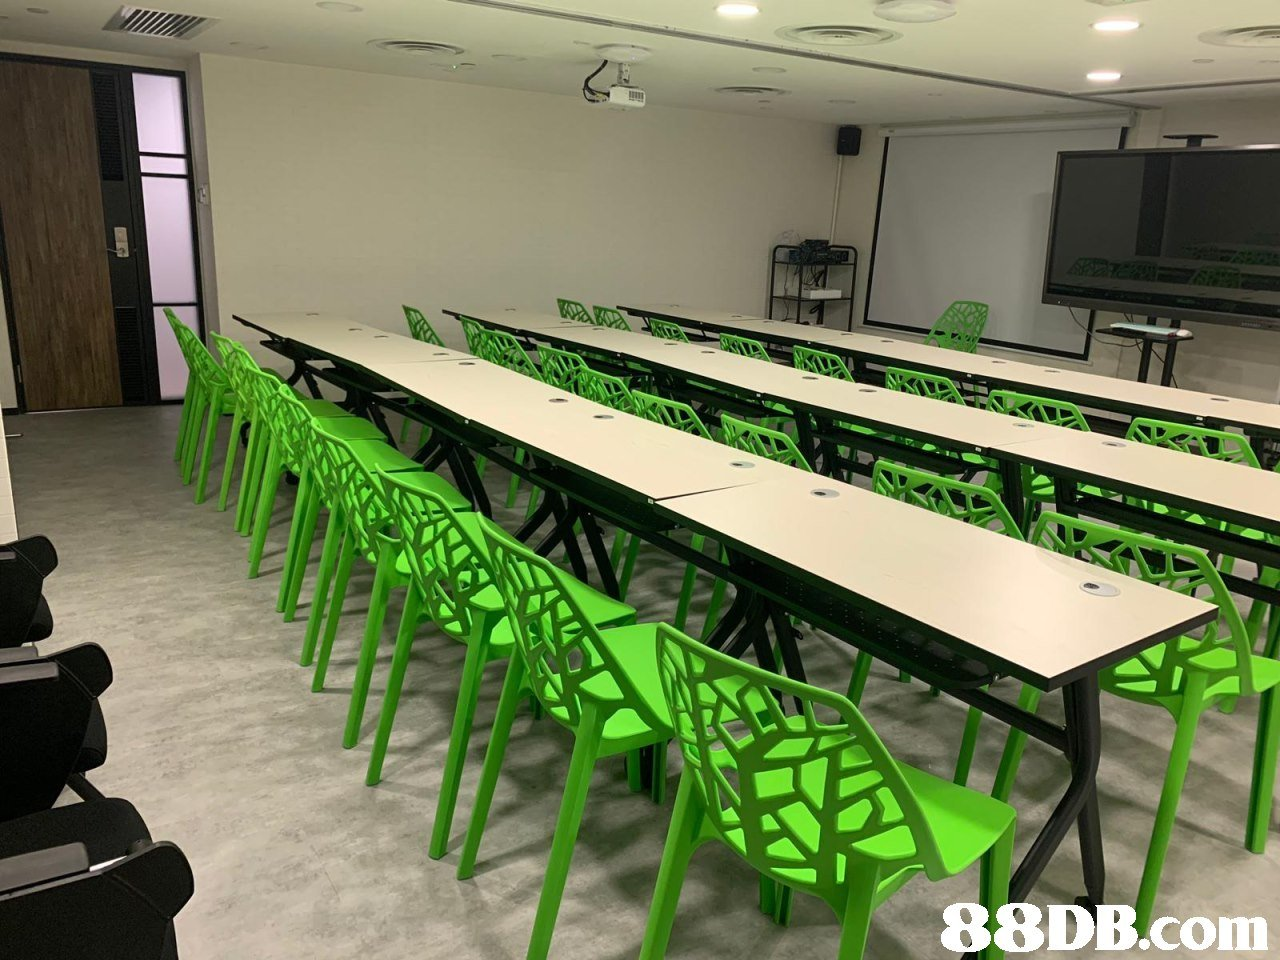 i1  classroom,table,conference hall,auditorium,furniture